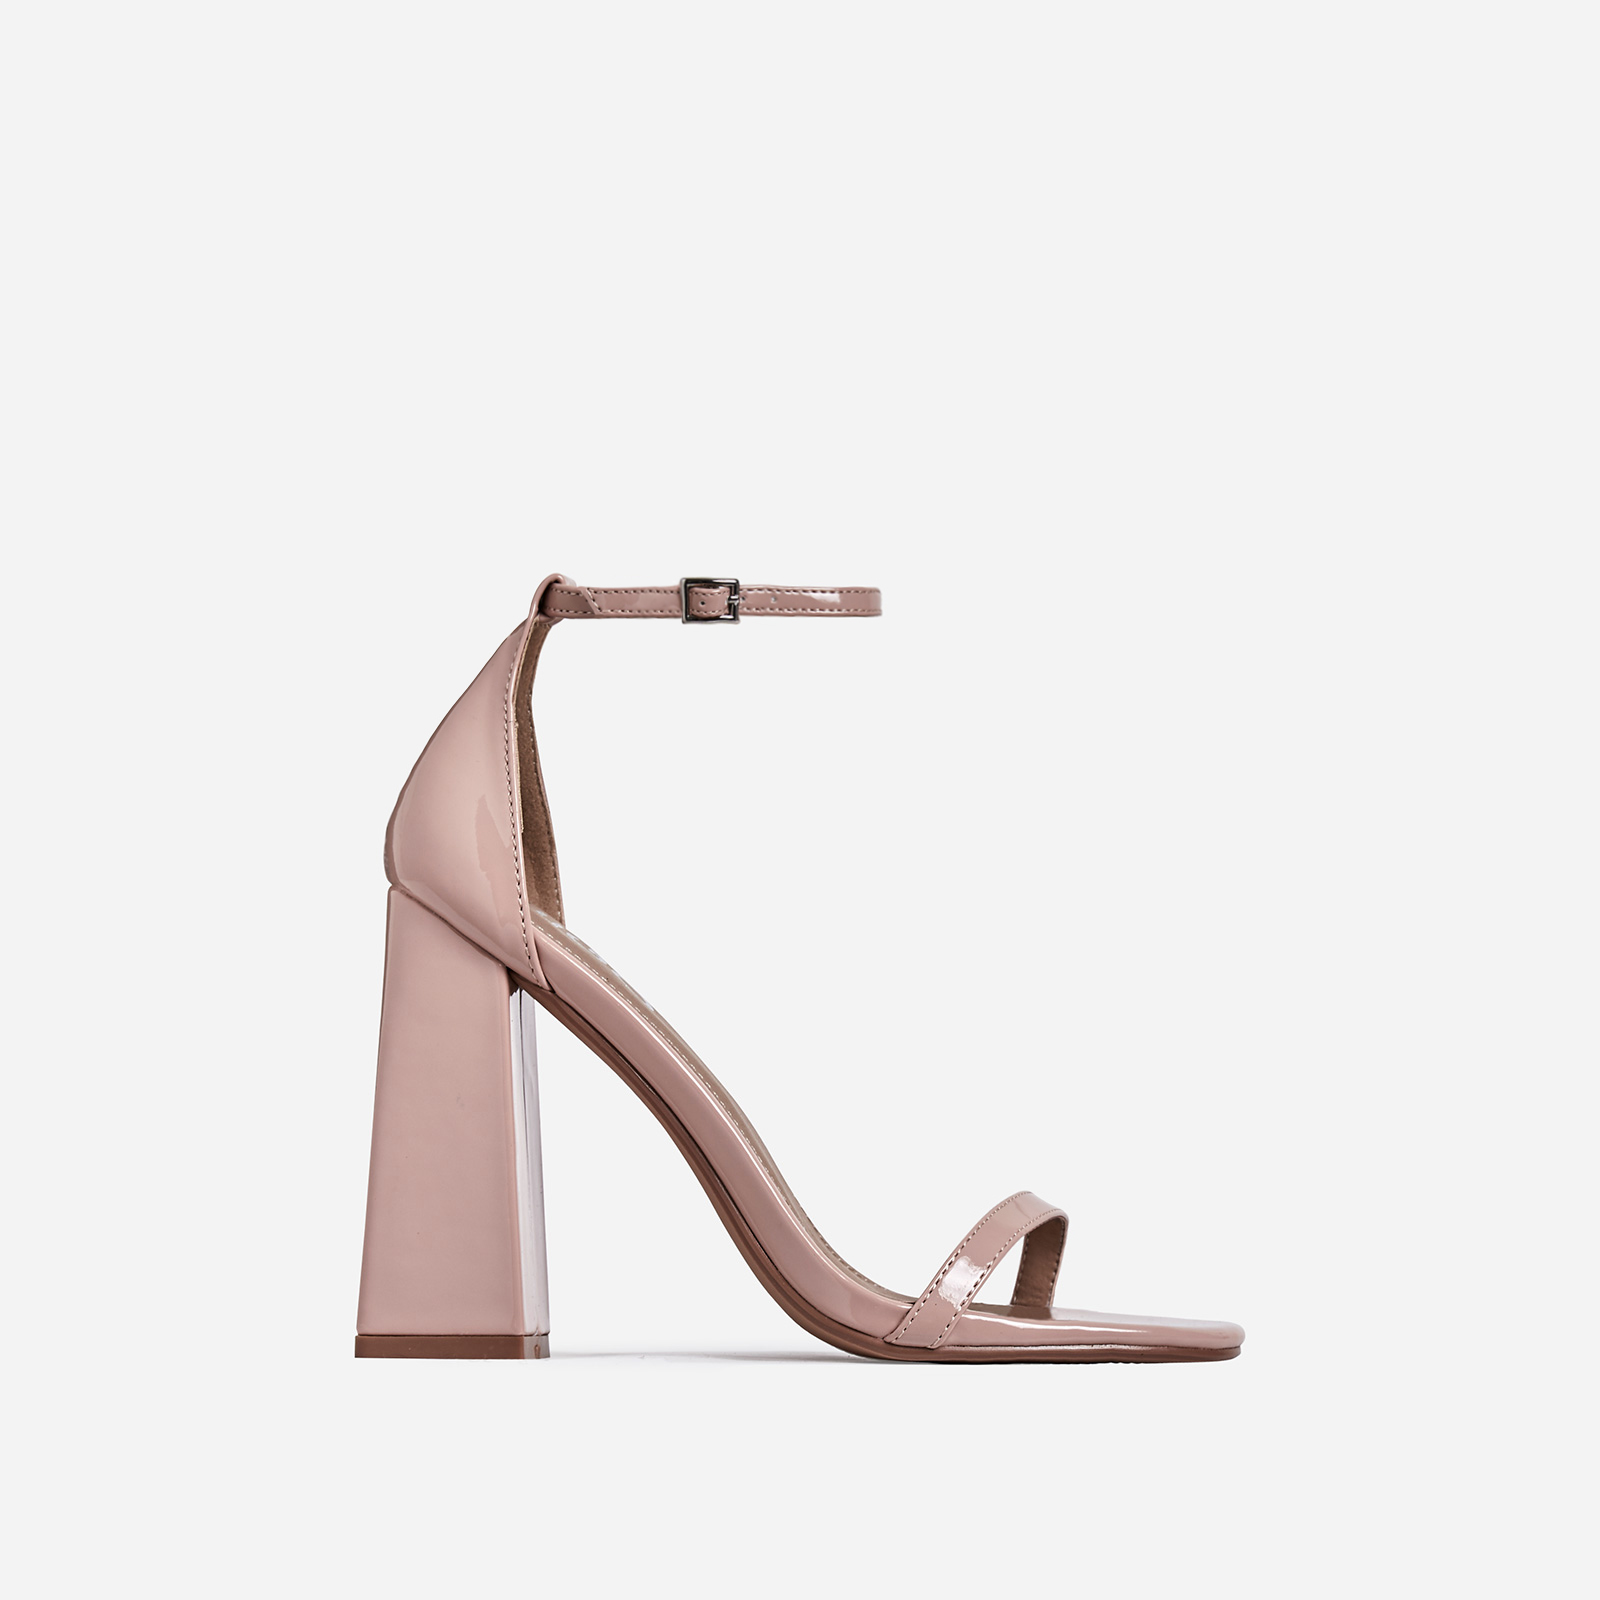 Atomic Square Block Heel In Nude Patent